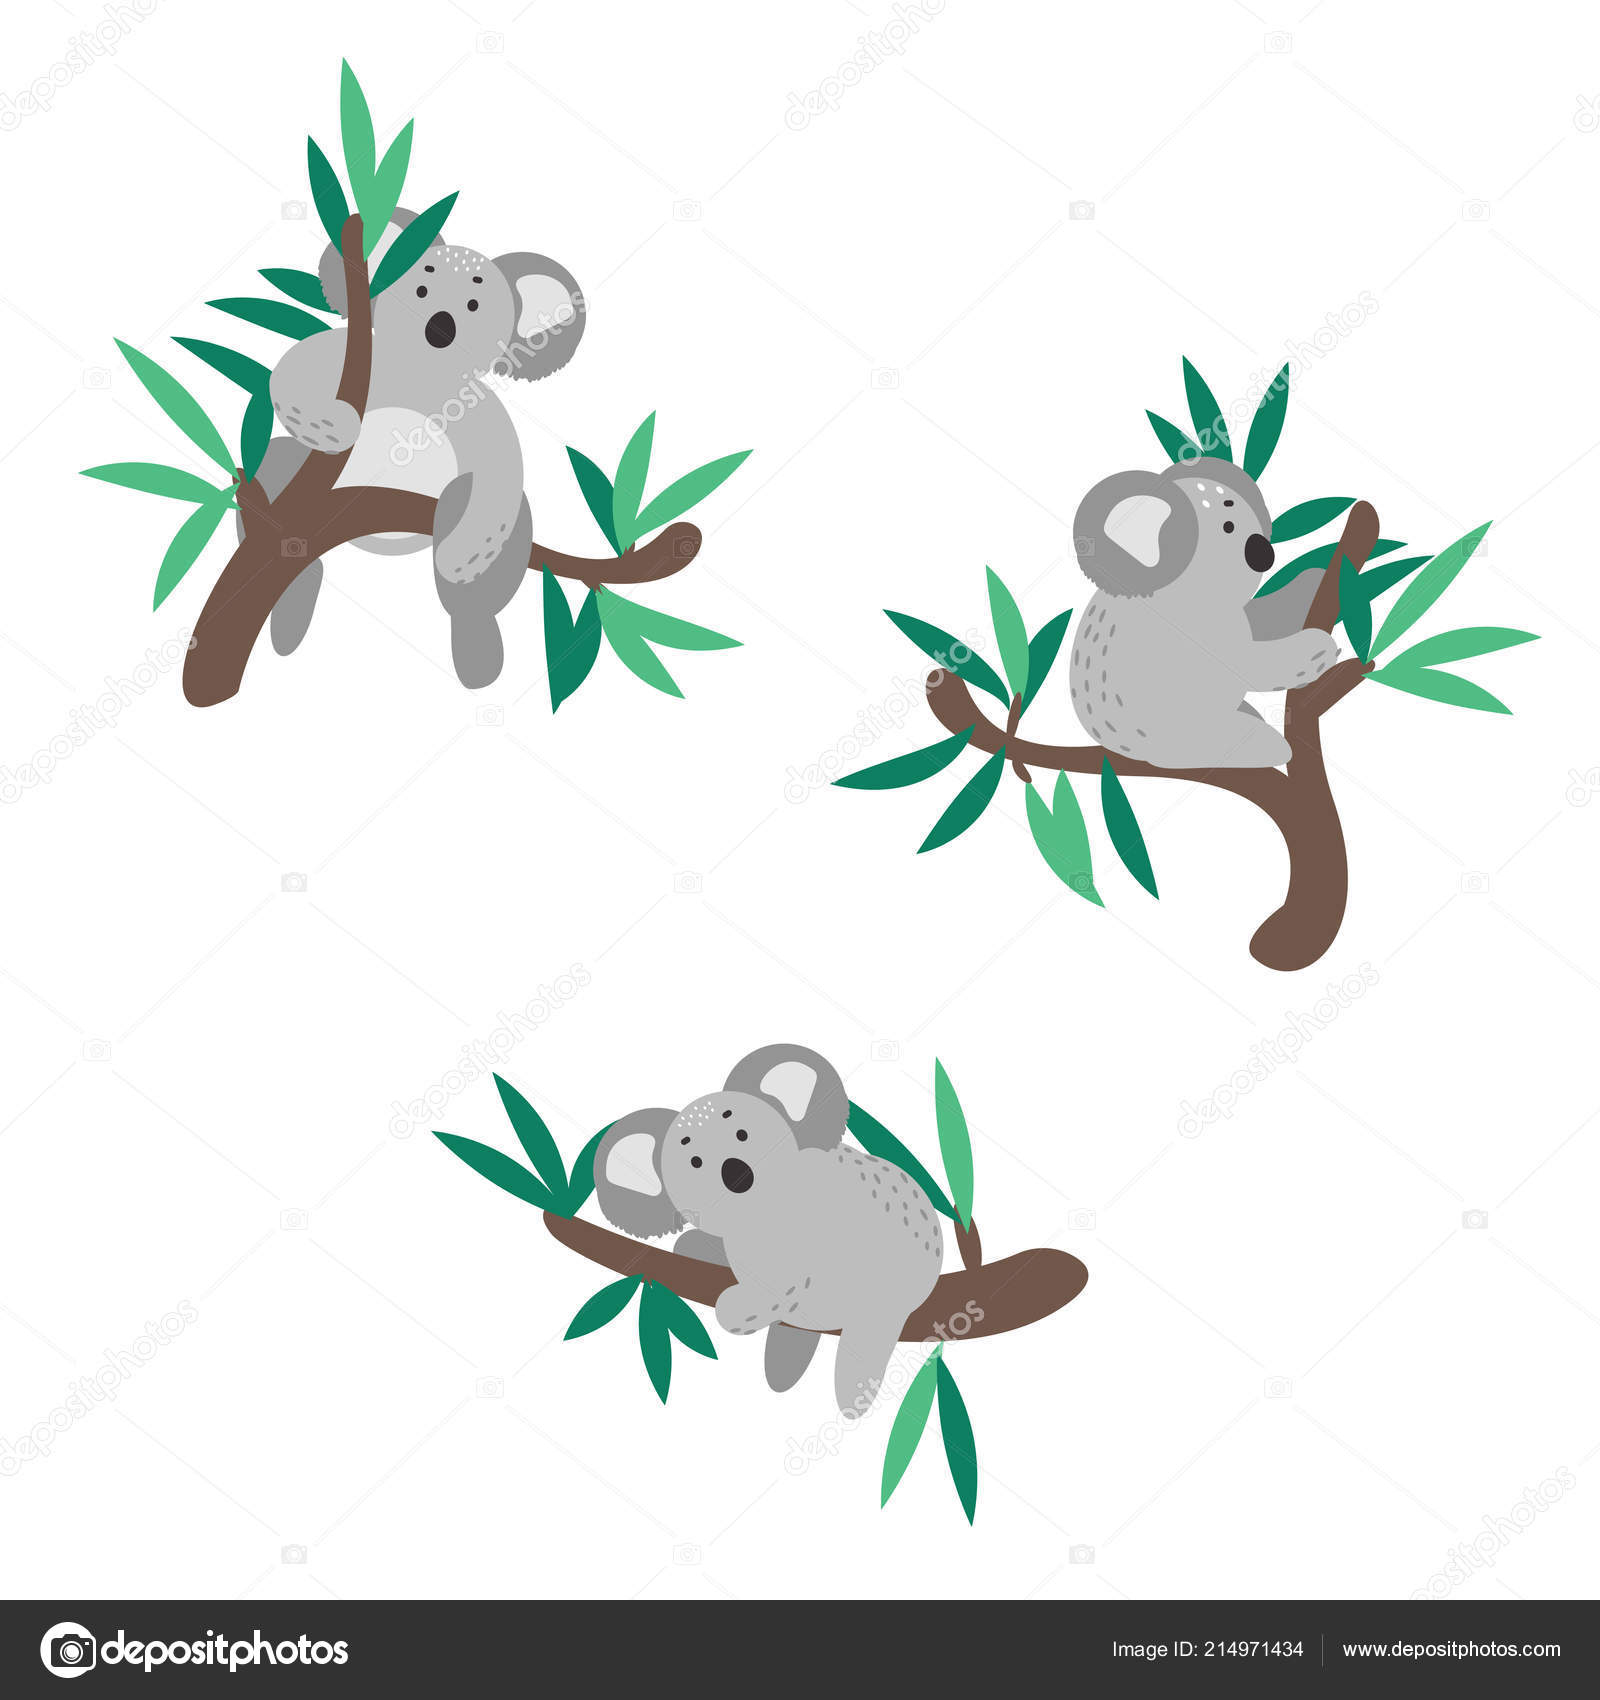 Clipart Koala Bear Cute Koala Bear Climbing On Eucalyptus Tree Vector Clipart Stock Vector C Inides 214971434 Choose from over a million free vectors, clipart graphics, vector art images, design templates, and illustrations created by artists worldwide! https depositphotos com 214971434 stock illustration cute koala bear climbing on html